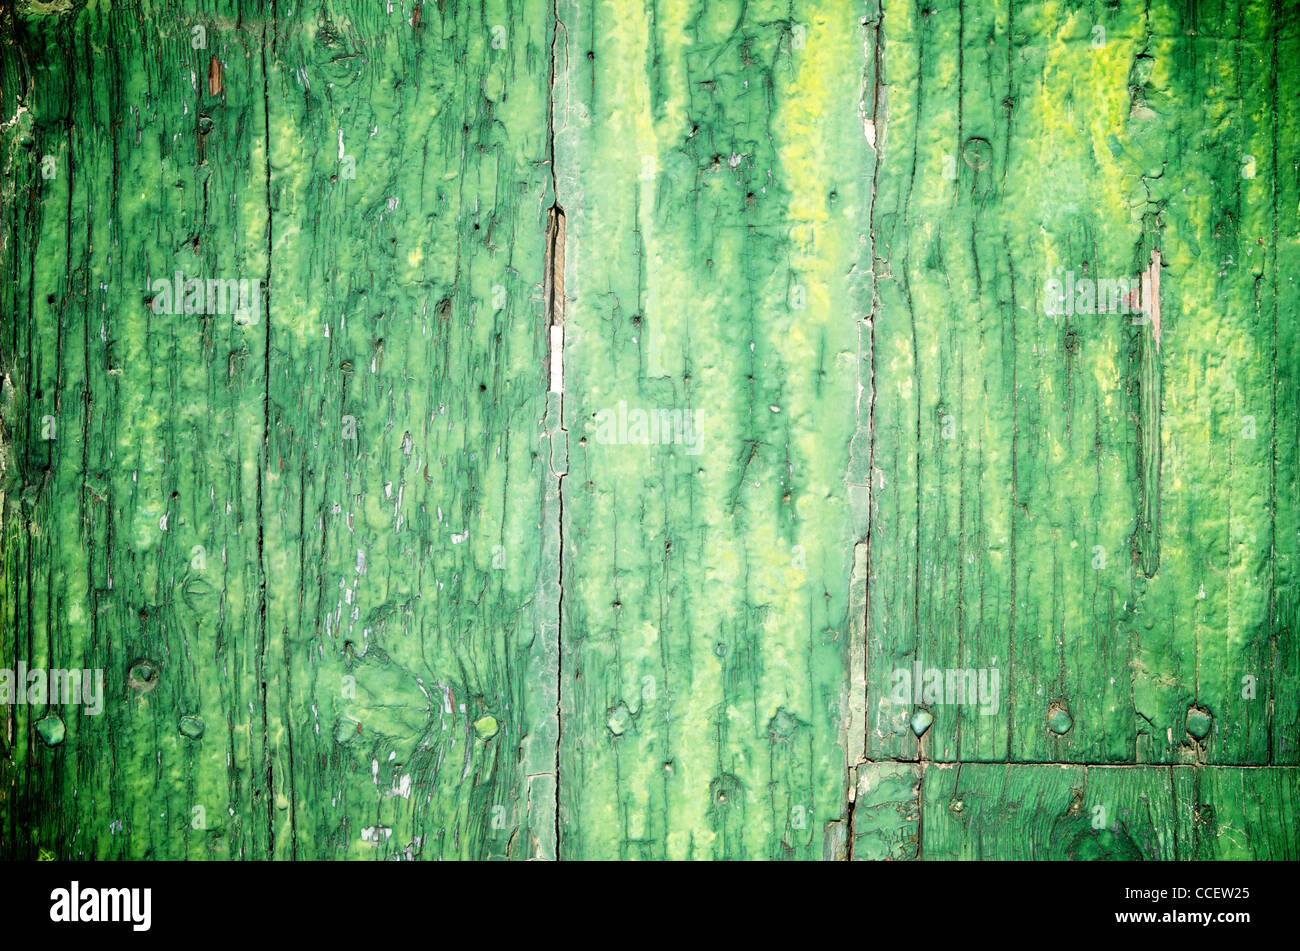 abstract foreground an old wooden door - Stock Image